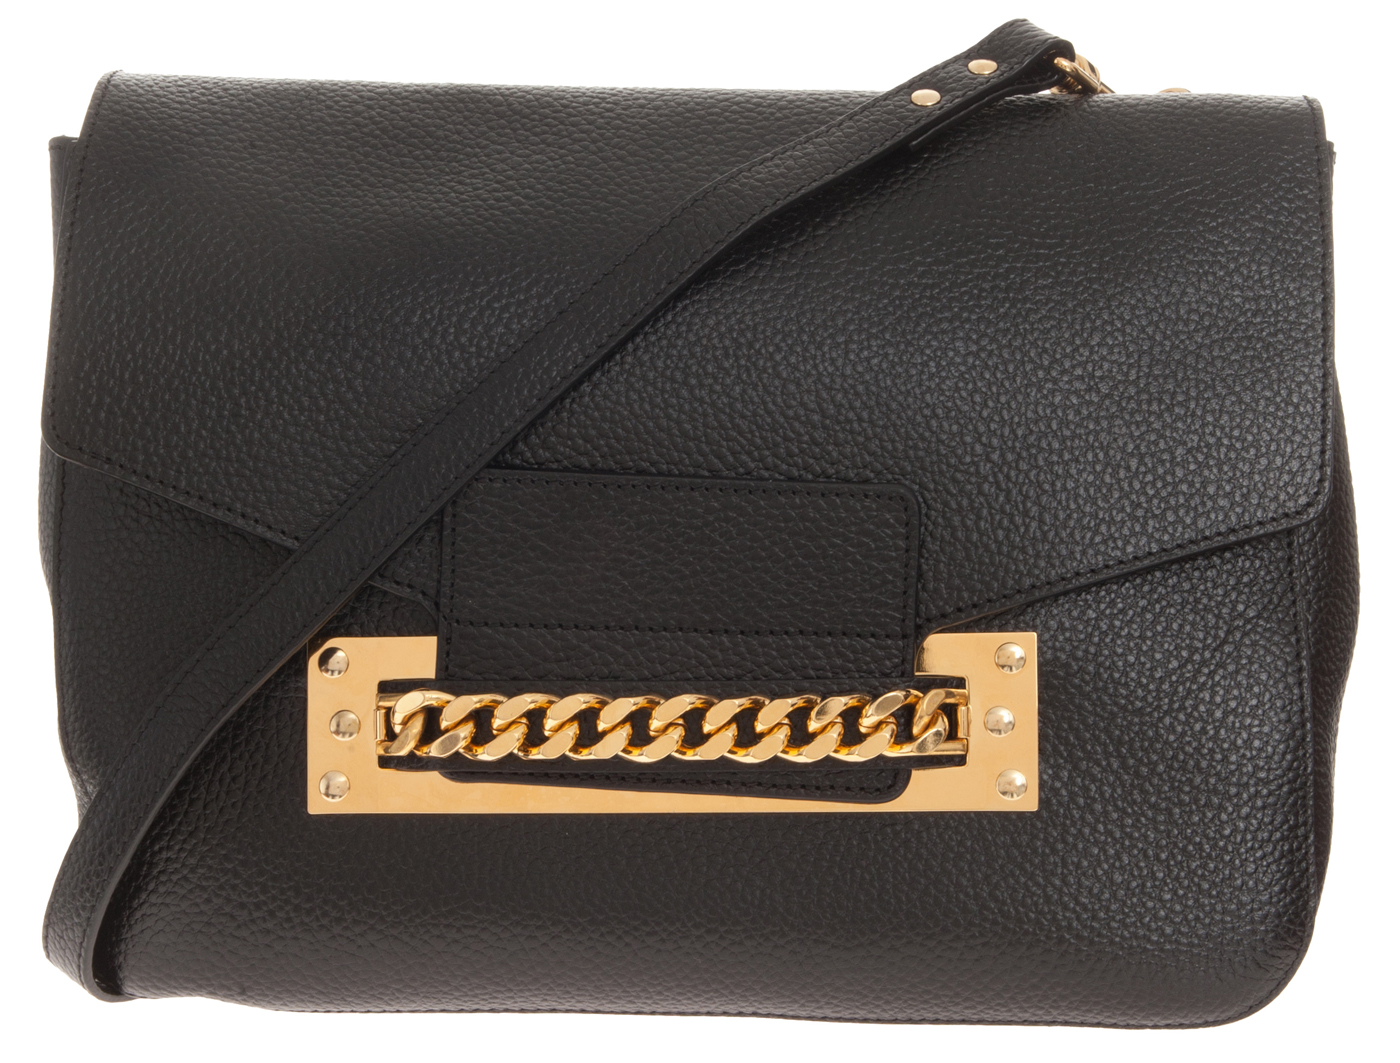 Sophie Hulme Soft Chain Bag Stamp black Leather shoulder bag